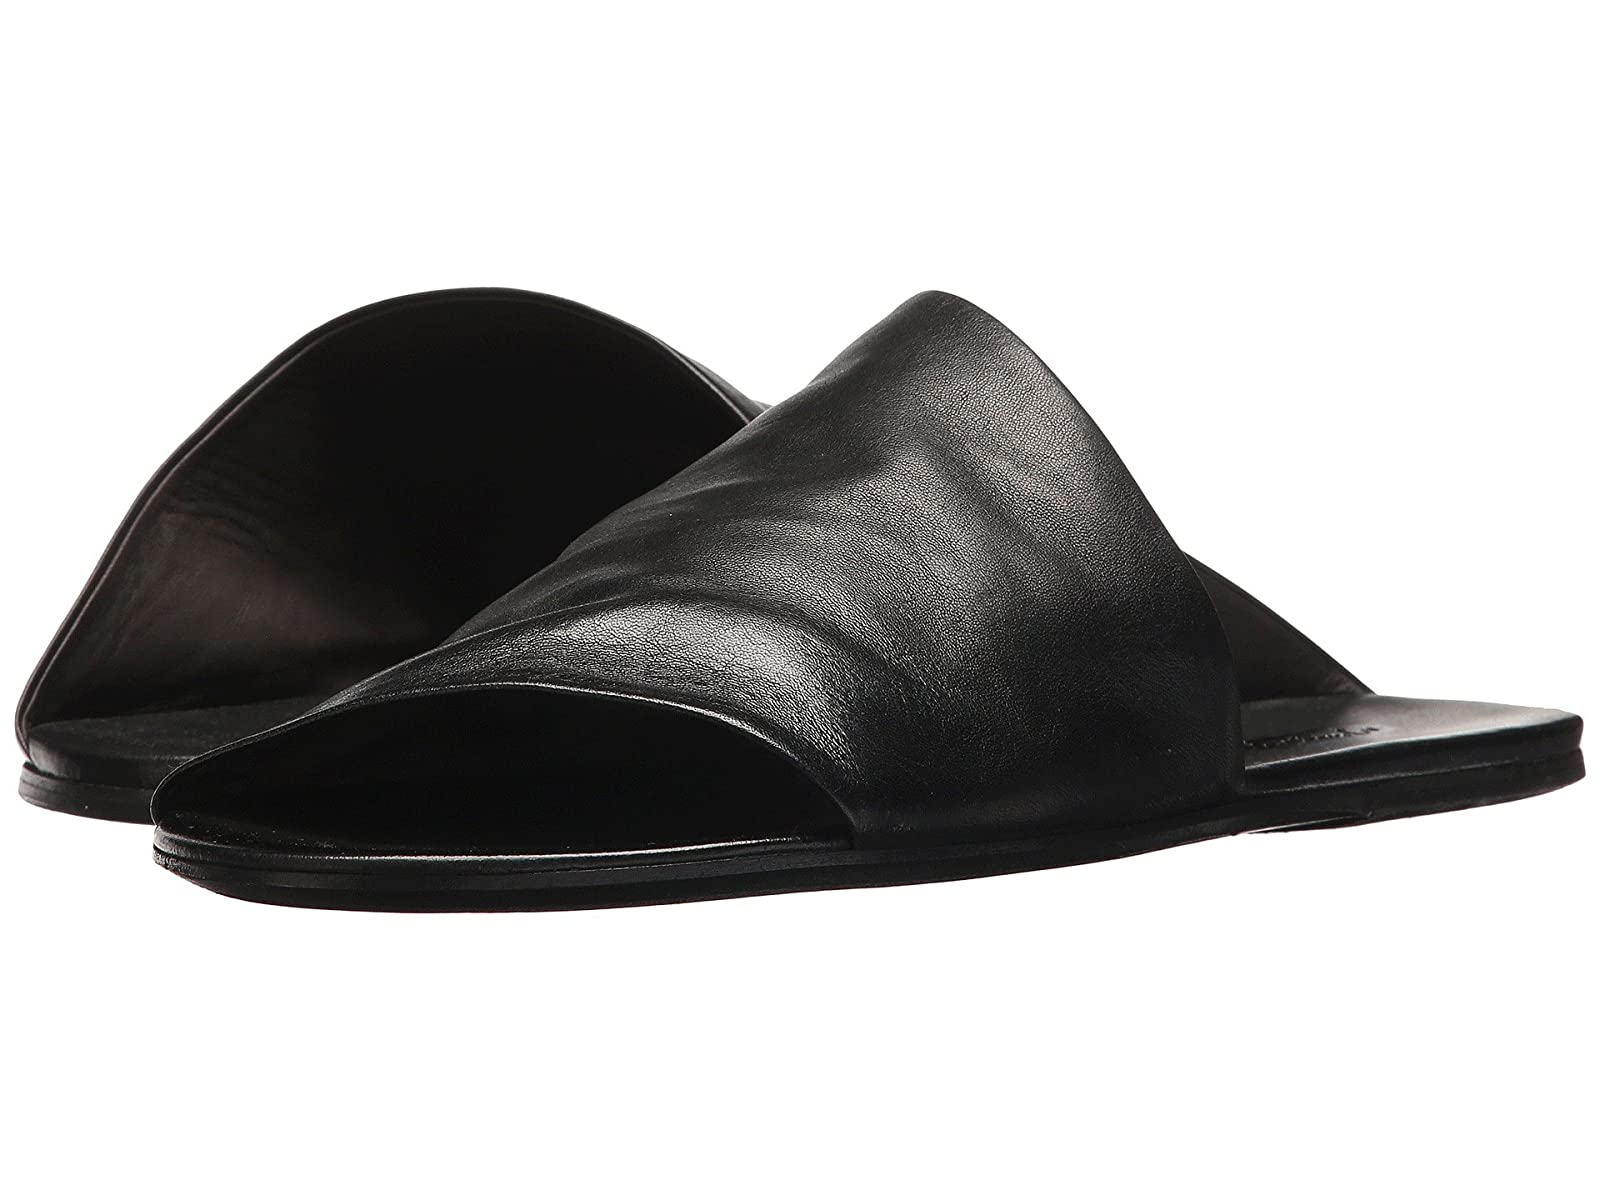 Marsell Wrap Slip-On SandalCheap and distinctive eye-catching shoes